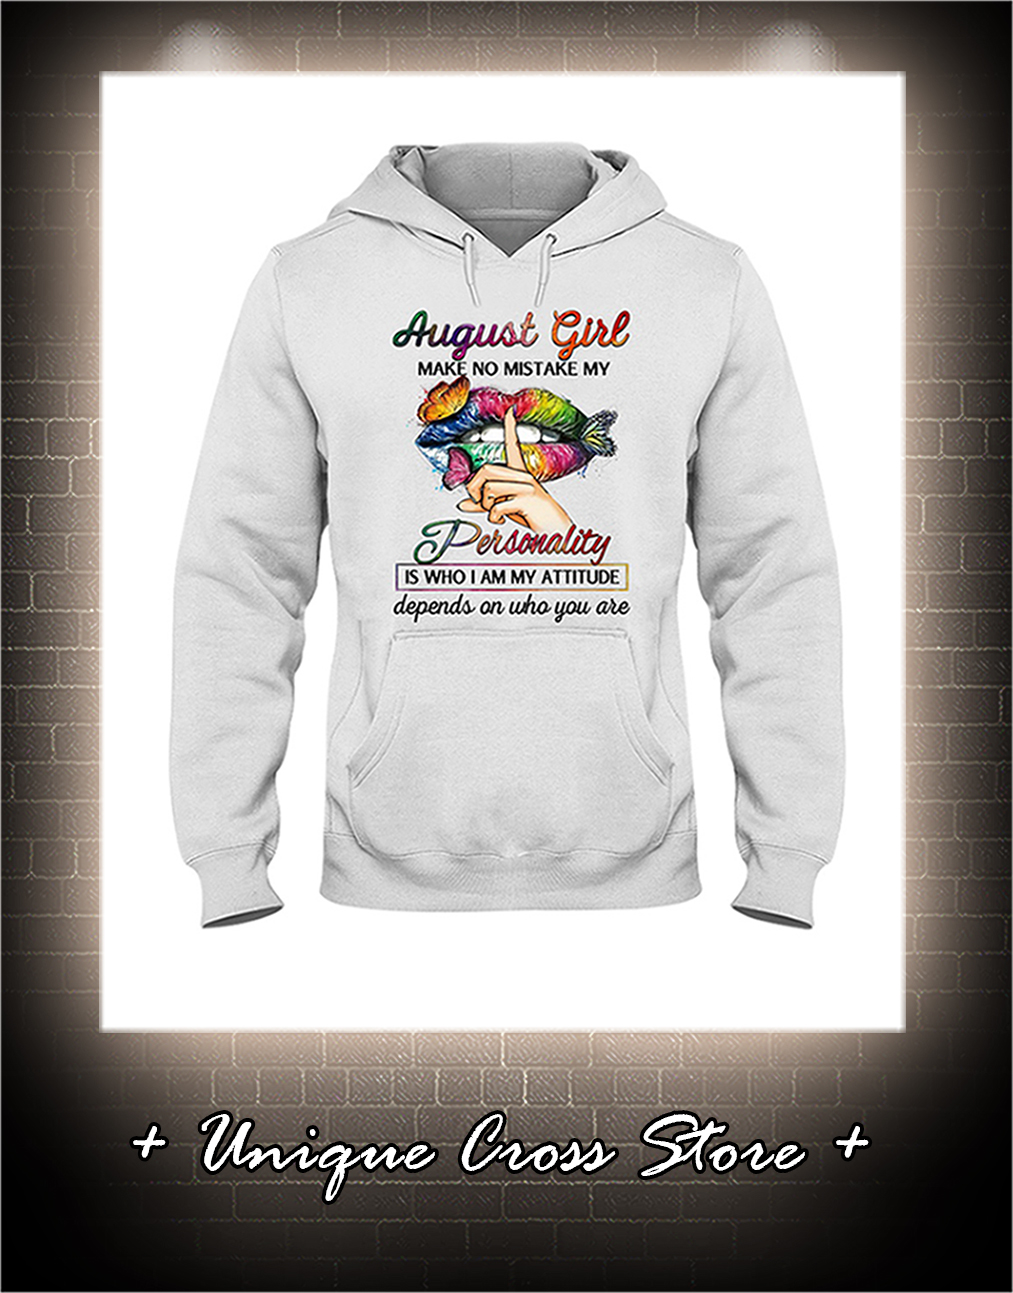 Shut Up Lips Butterfly August Girl Make No Mistake My Personality Is Who I Am My Attitude hoodie